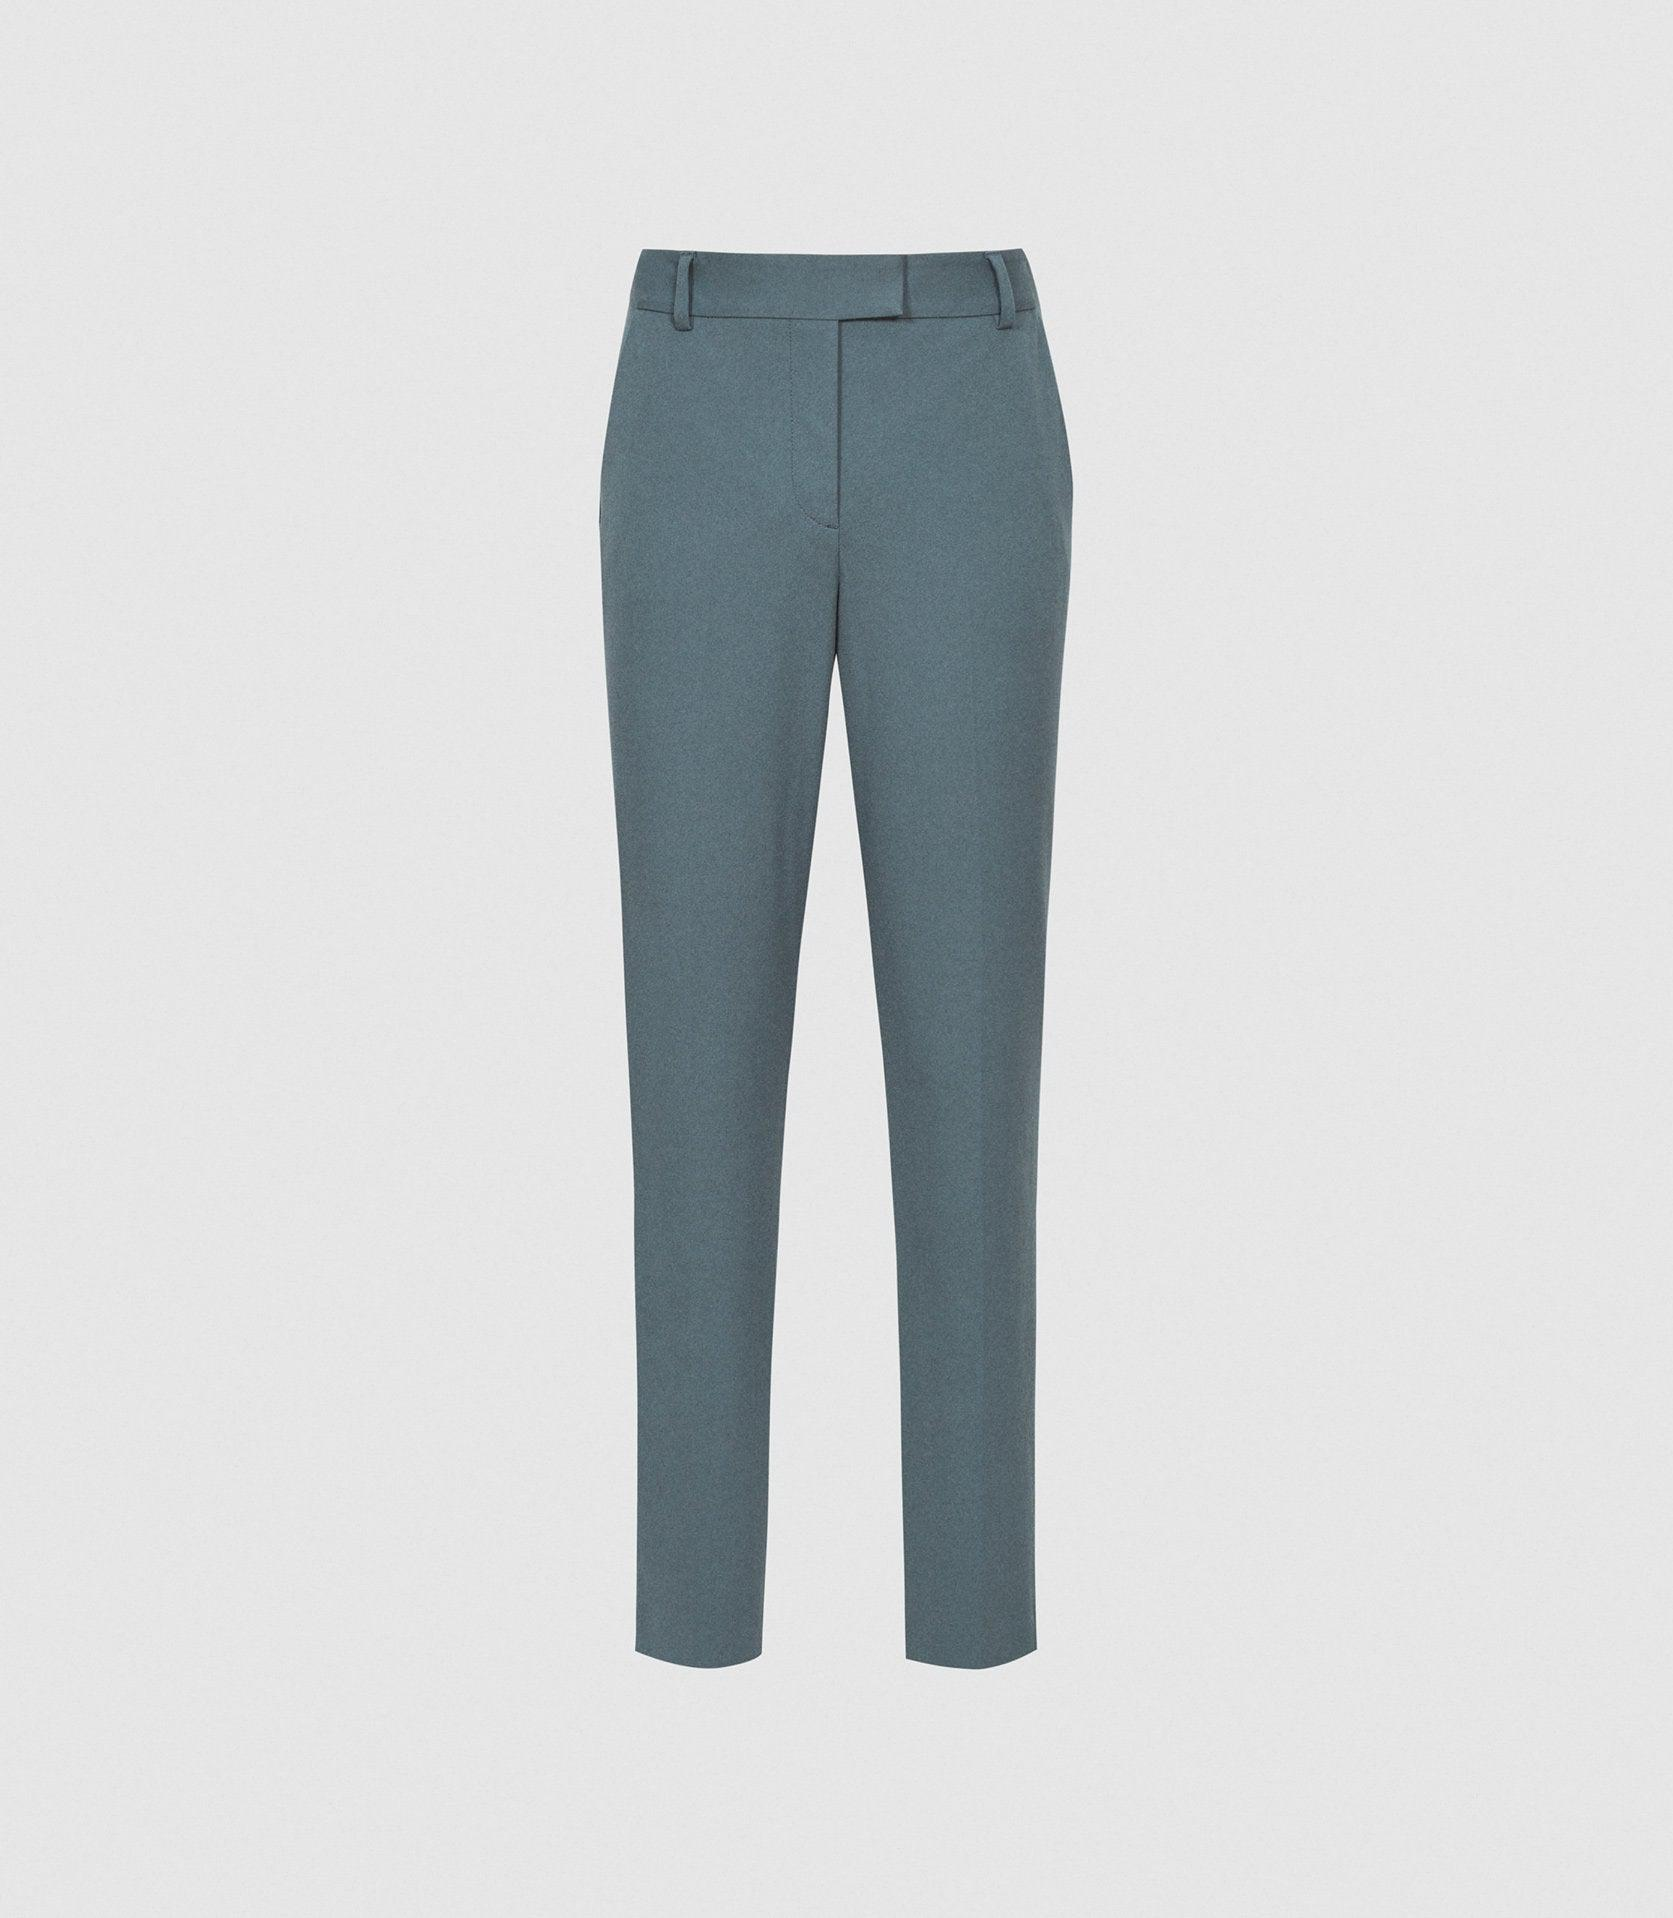 JOANNE - SLIM FIT TAILORED TROUSERS 3